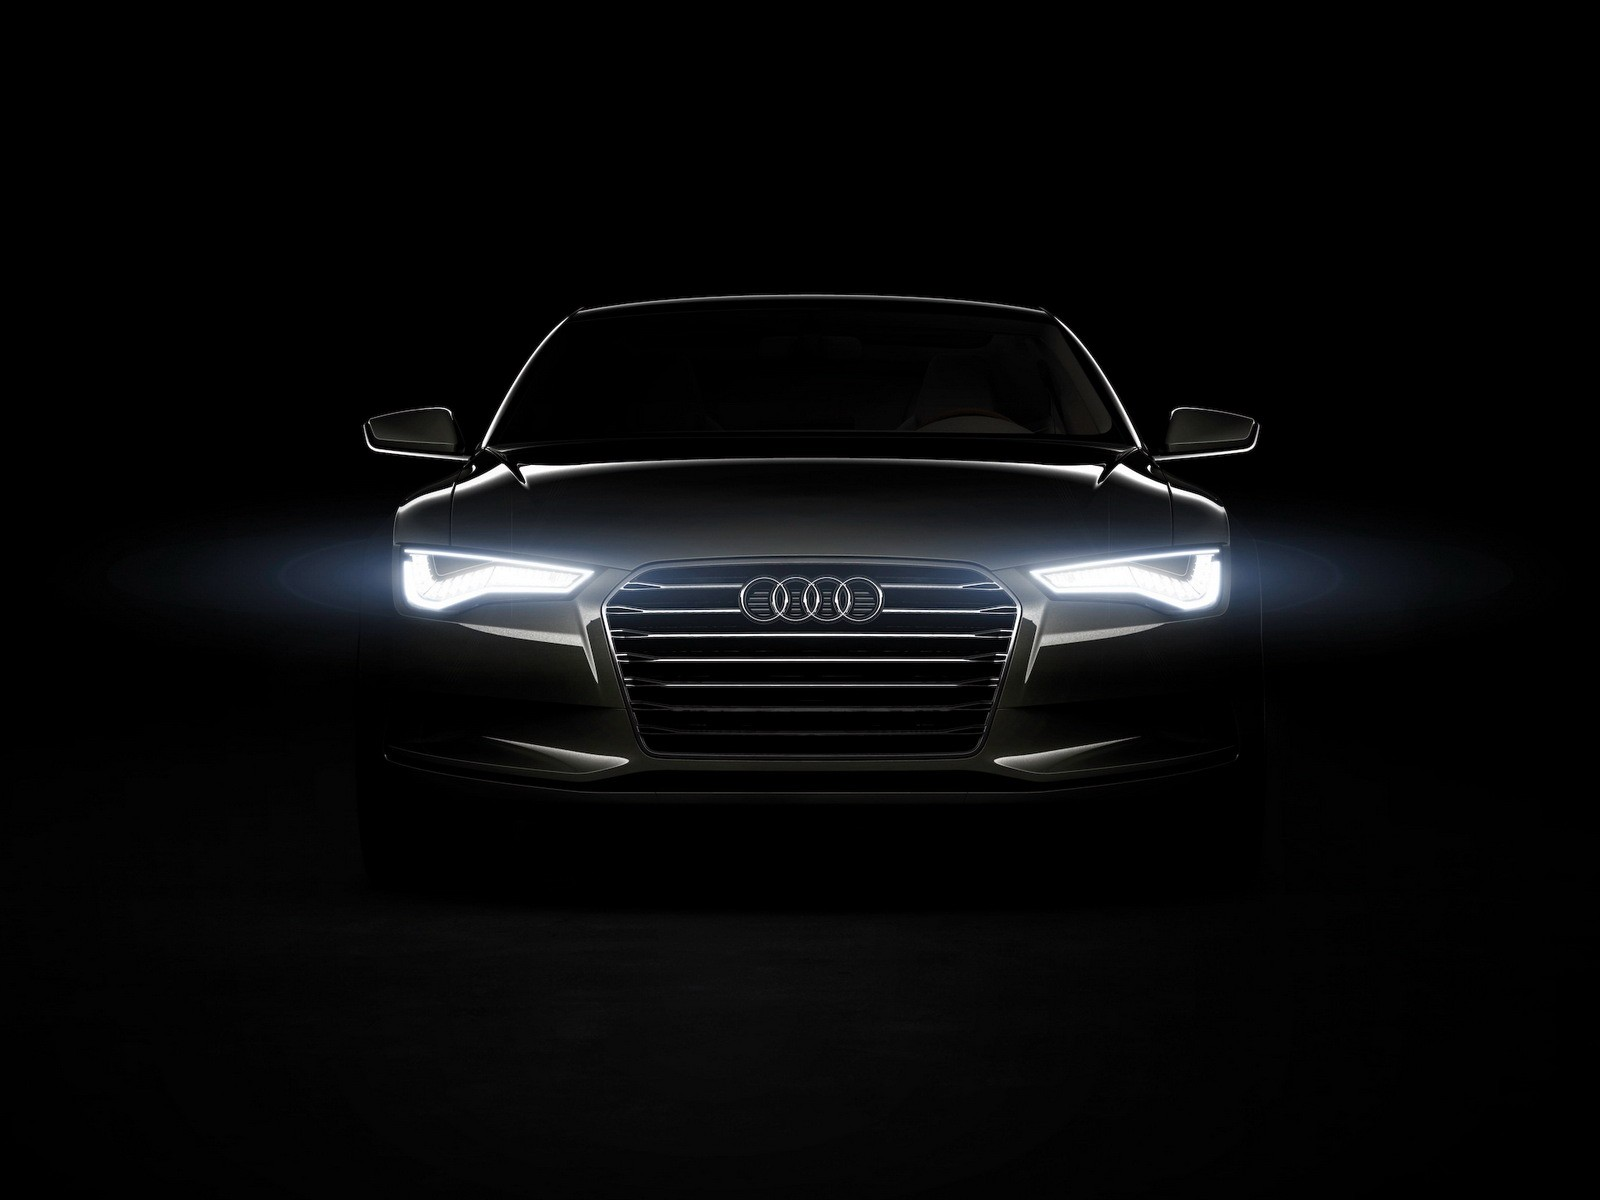 Amazing Audi Wallpaper